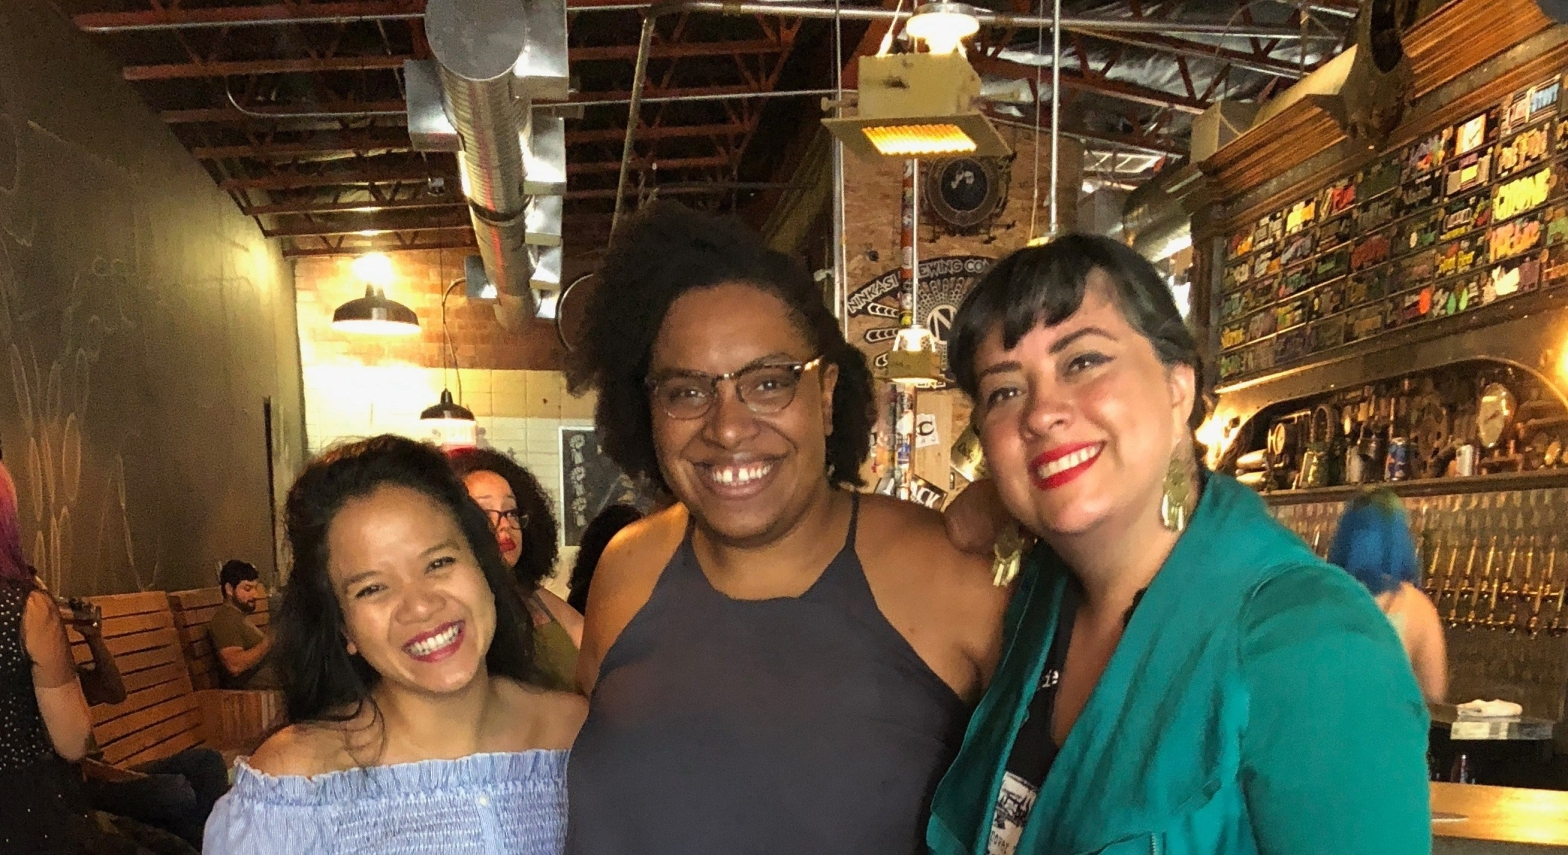 Sasha Pimentel, Ife-Chudeni Oputa, and Marisol Baca smiling after reading at LitHop 2018